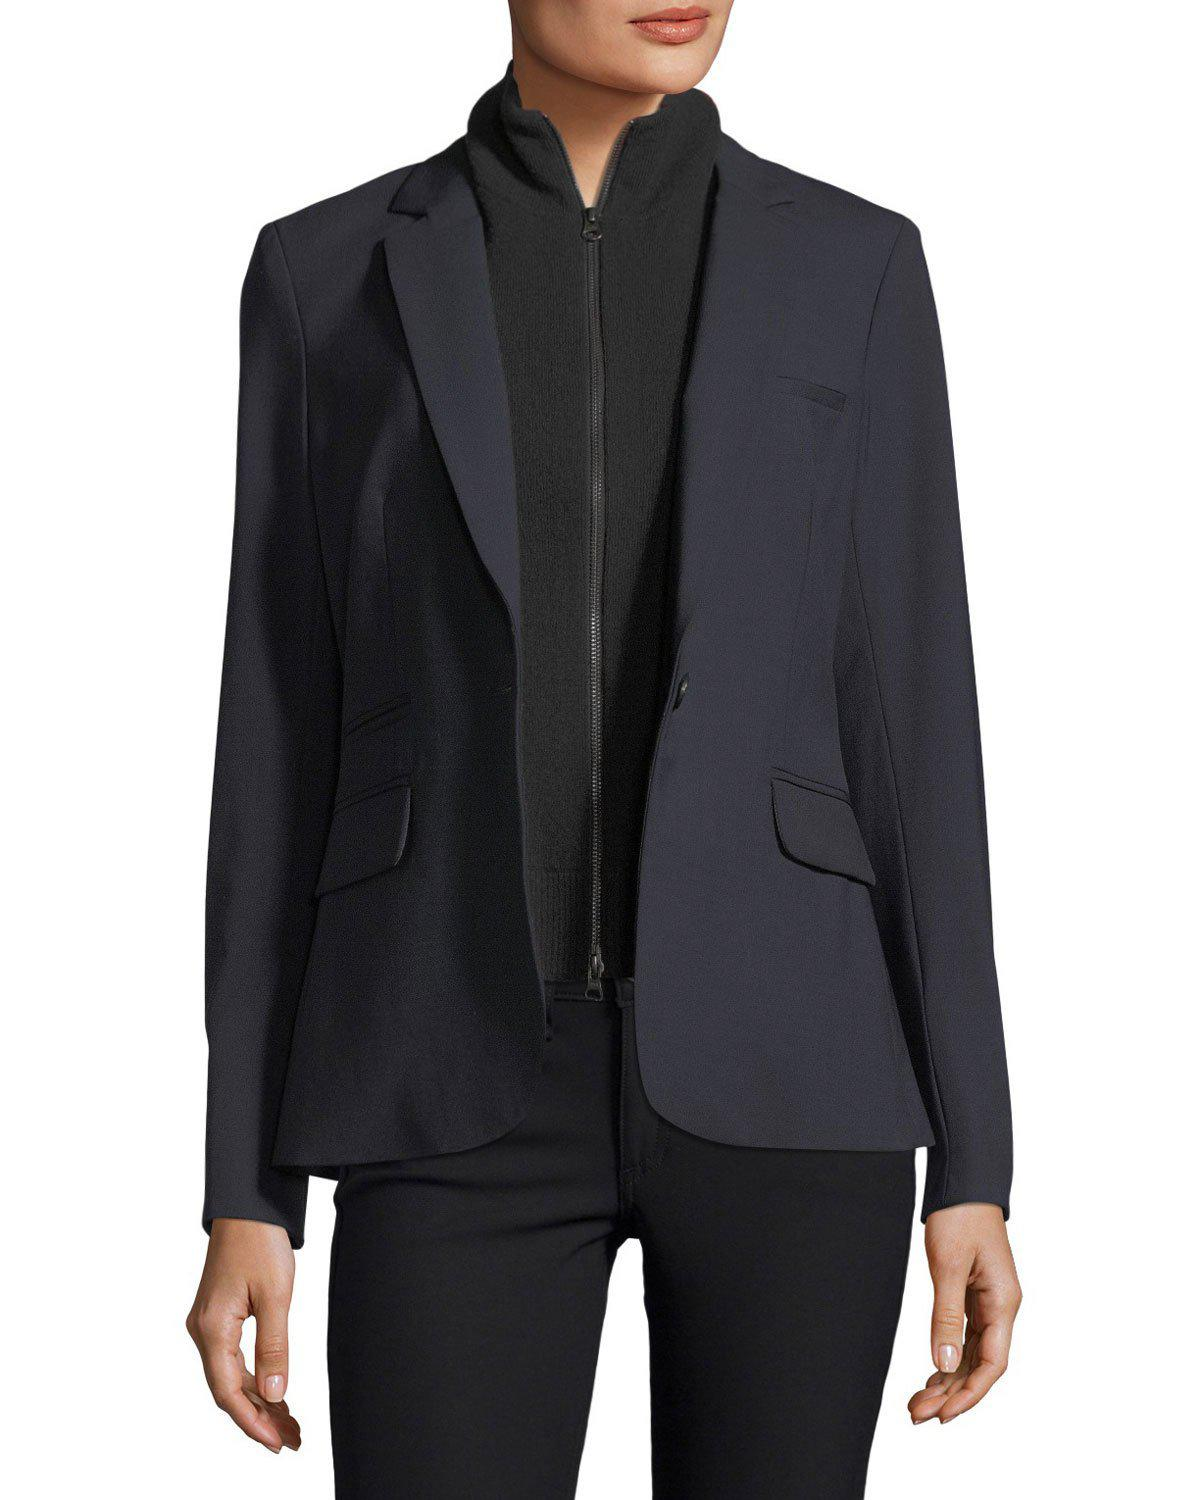 4f12c76b8e3 Veronica Beard Cashmere Uptown Zip-Front Dickey In Black